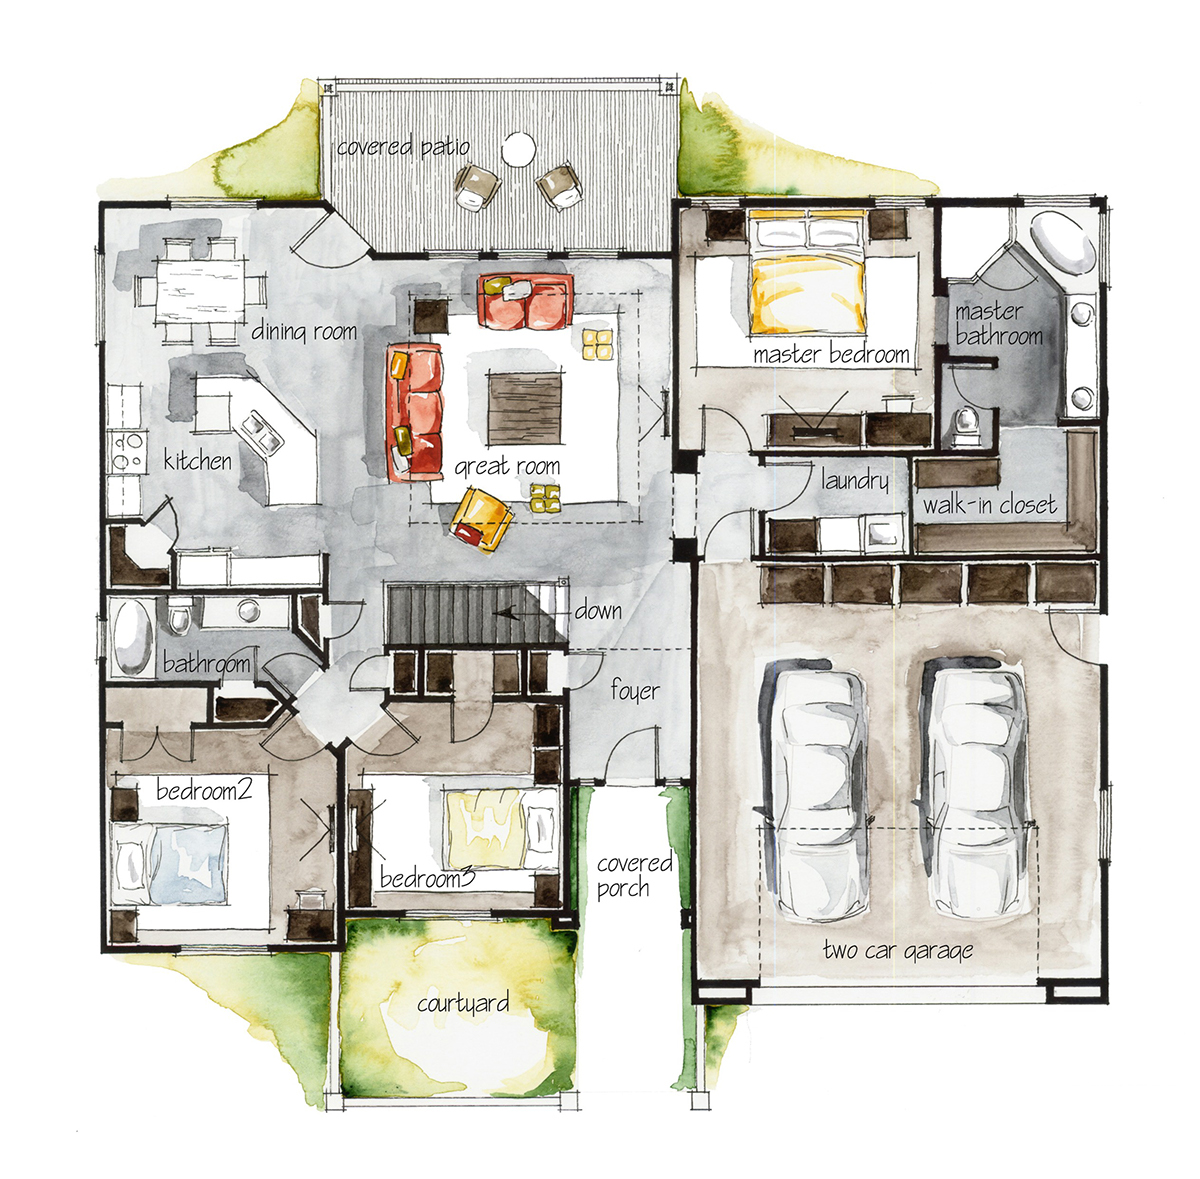 Real estate watercolor 2d floor plans part 3 on behance for Interior design layout drawing